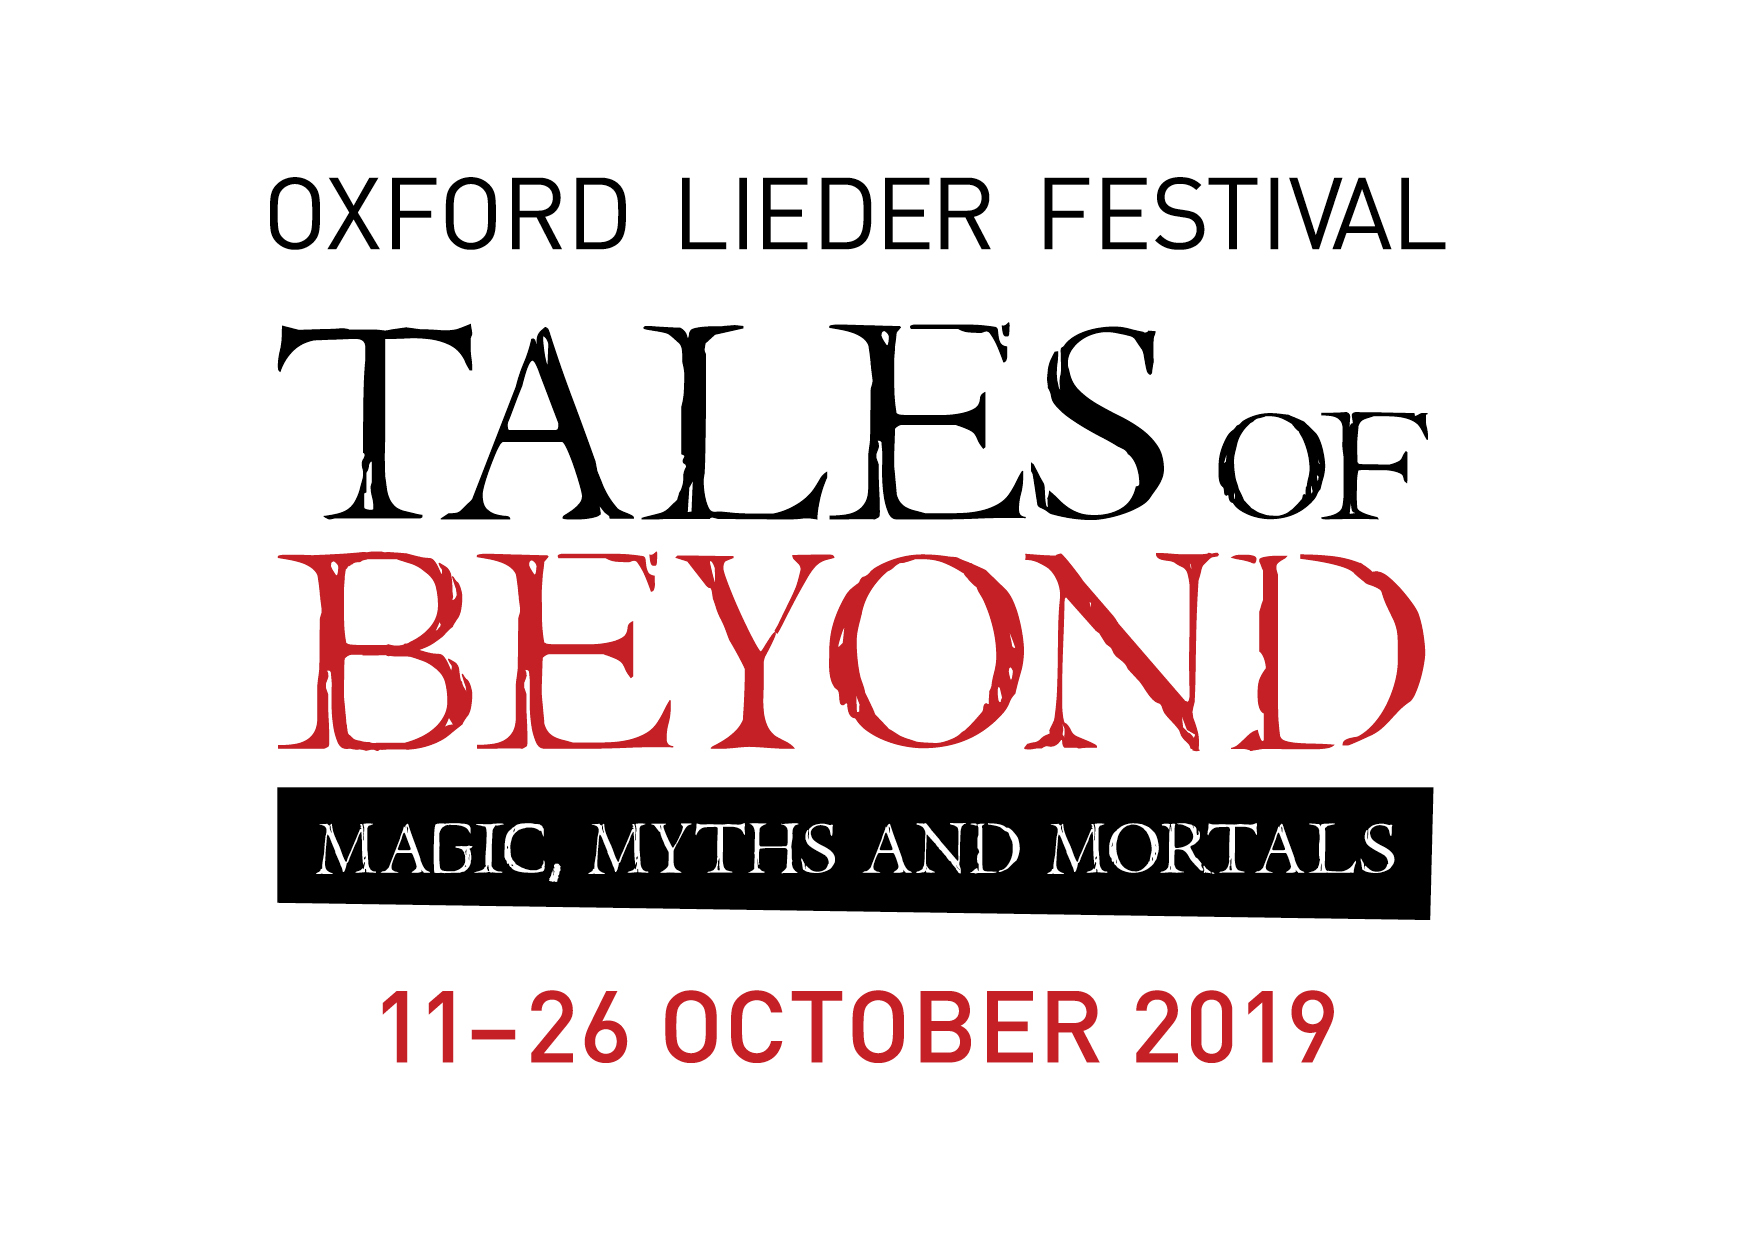 Oxford Lieder Festival 2019: Holywell Cemetery: Sold Out- Waiting List Only